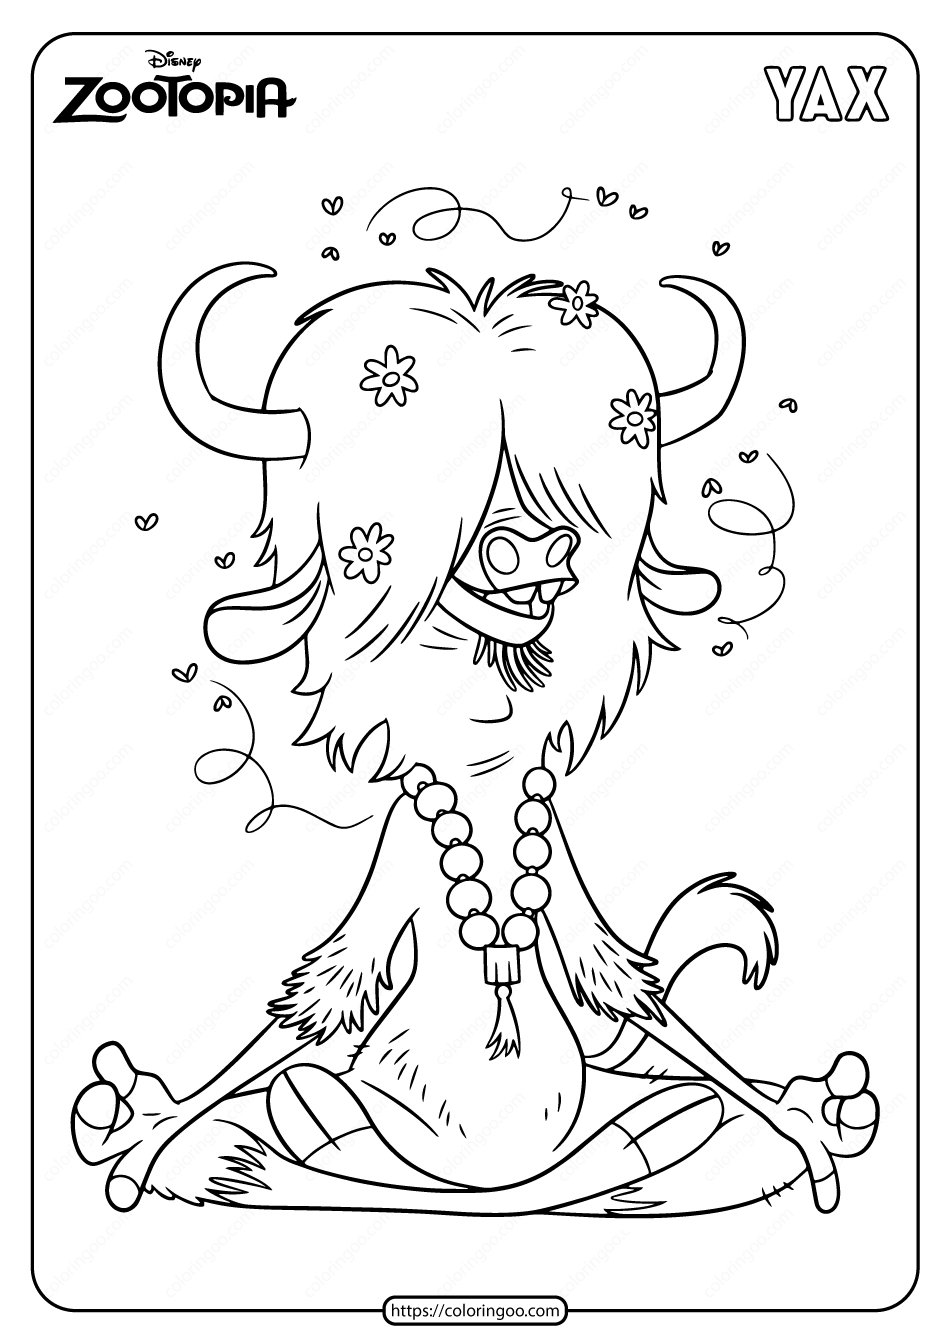 Printable Disney Zootopia Yax Coloring Pages